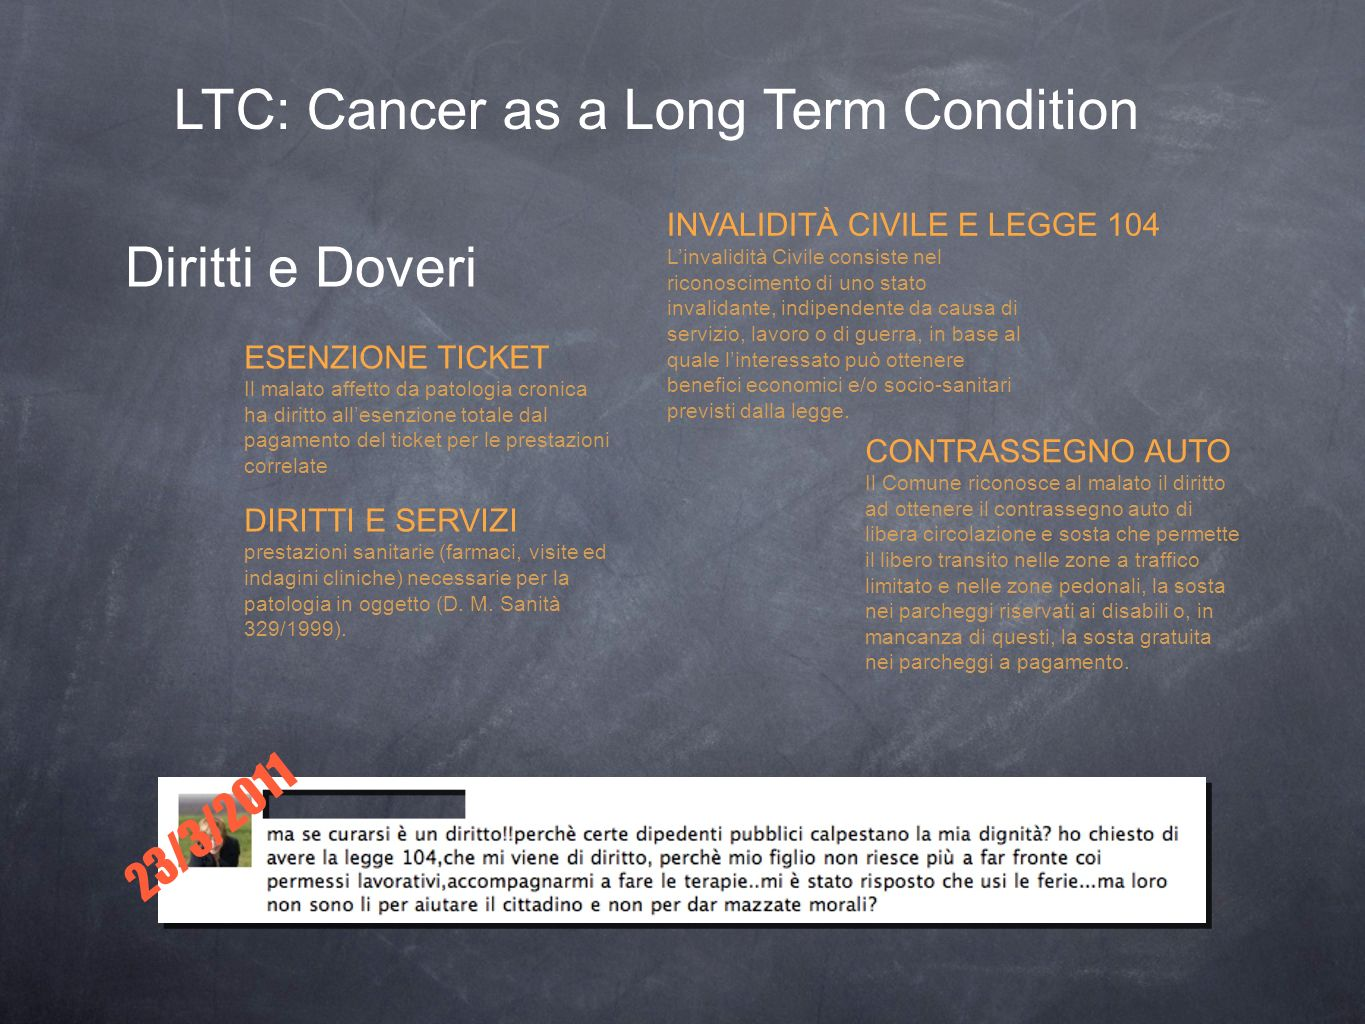 LTC: Cancer as a Long Term Condition